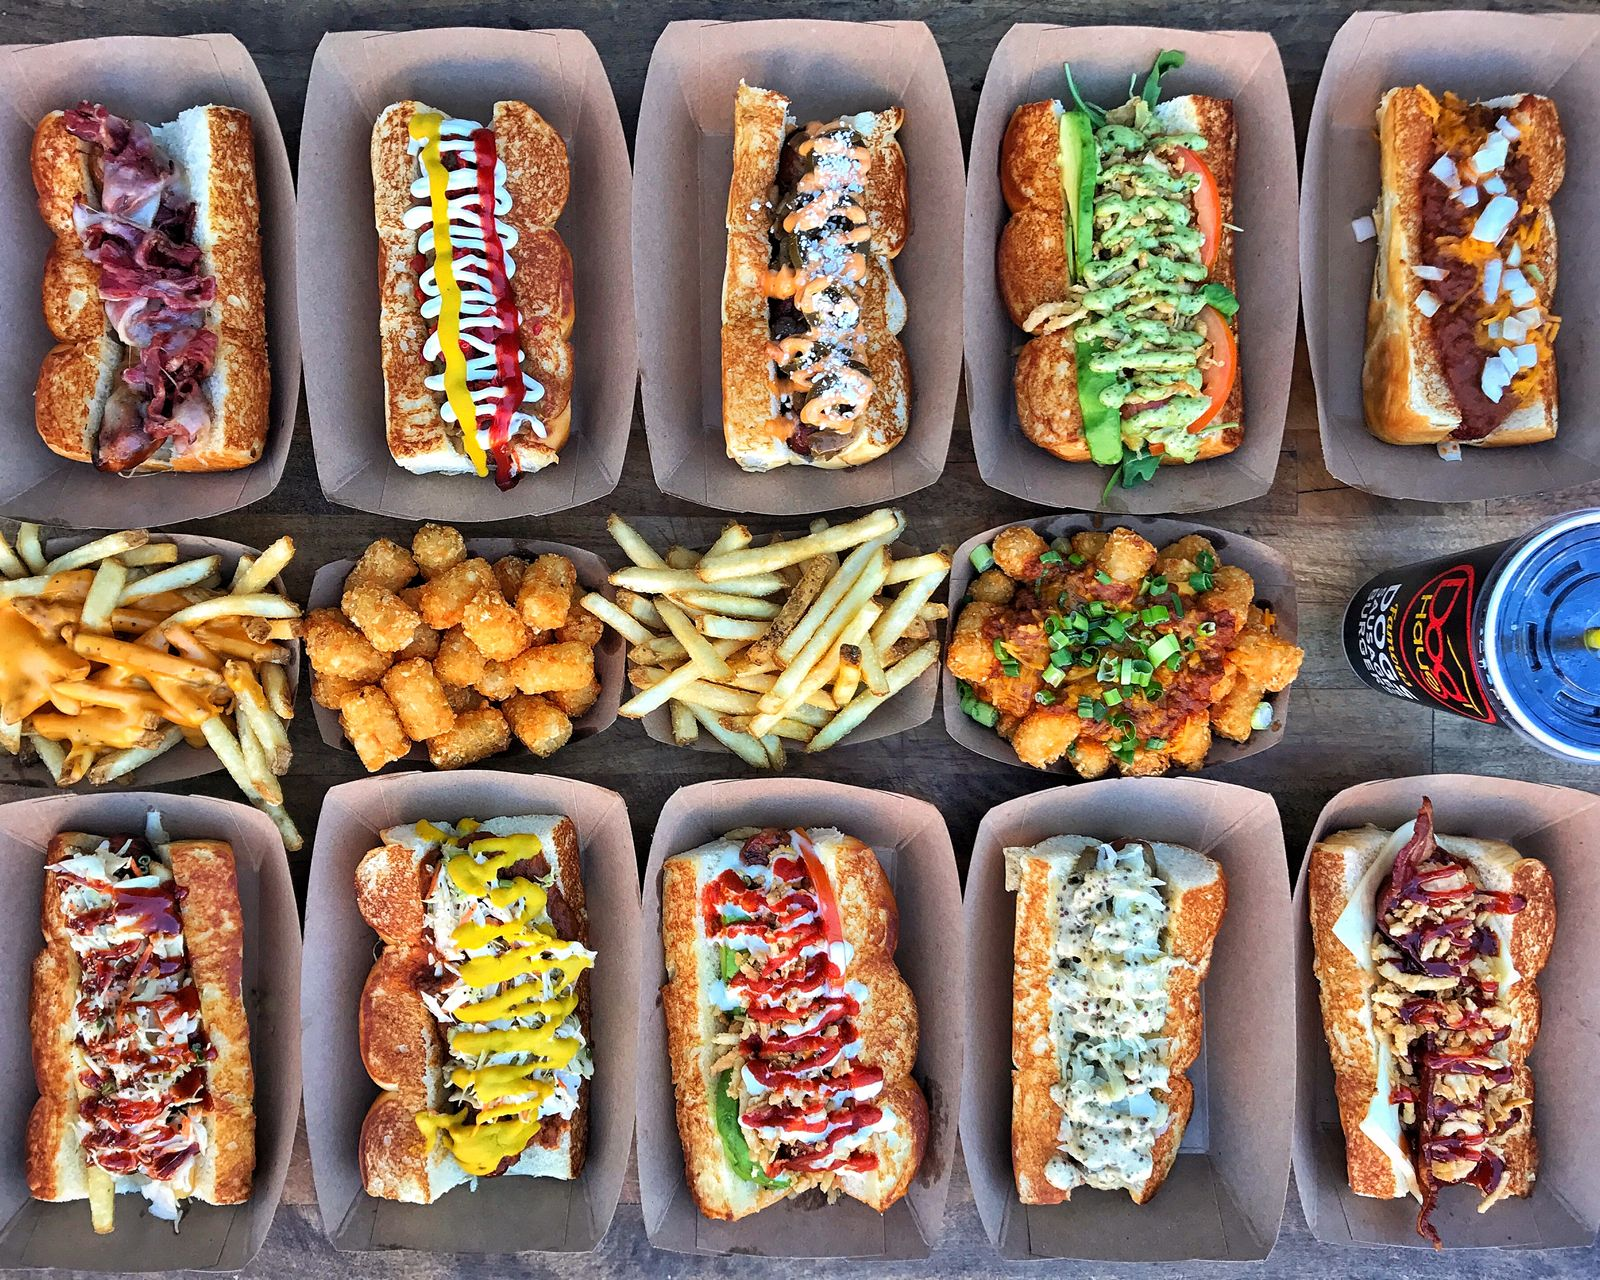 Dog Haus is Serving The Absolute Würst in Central Austin